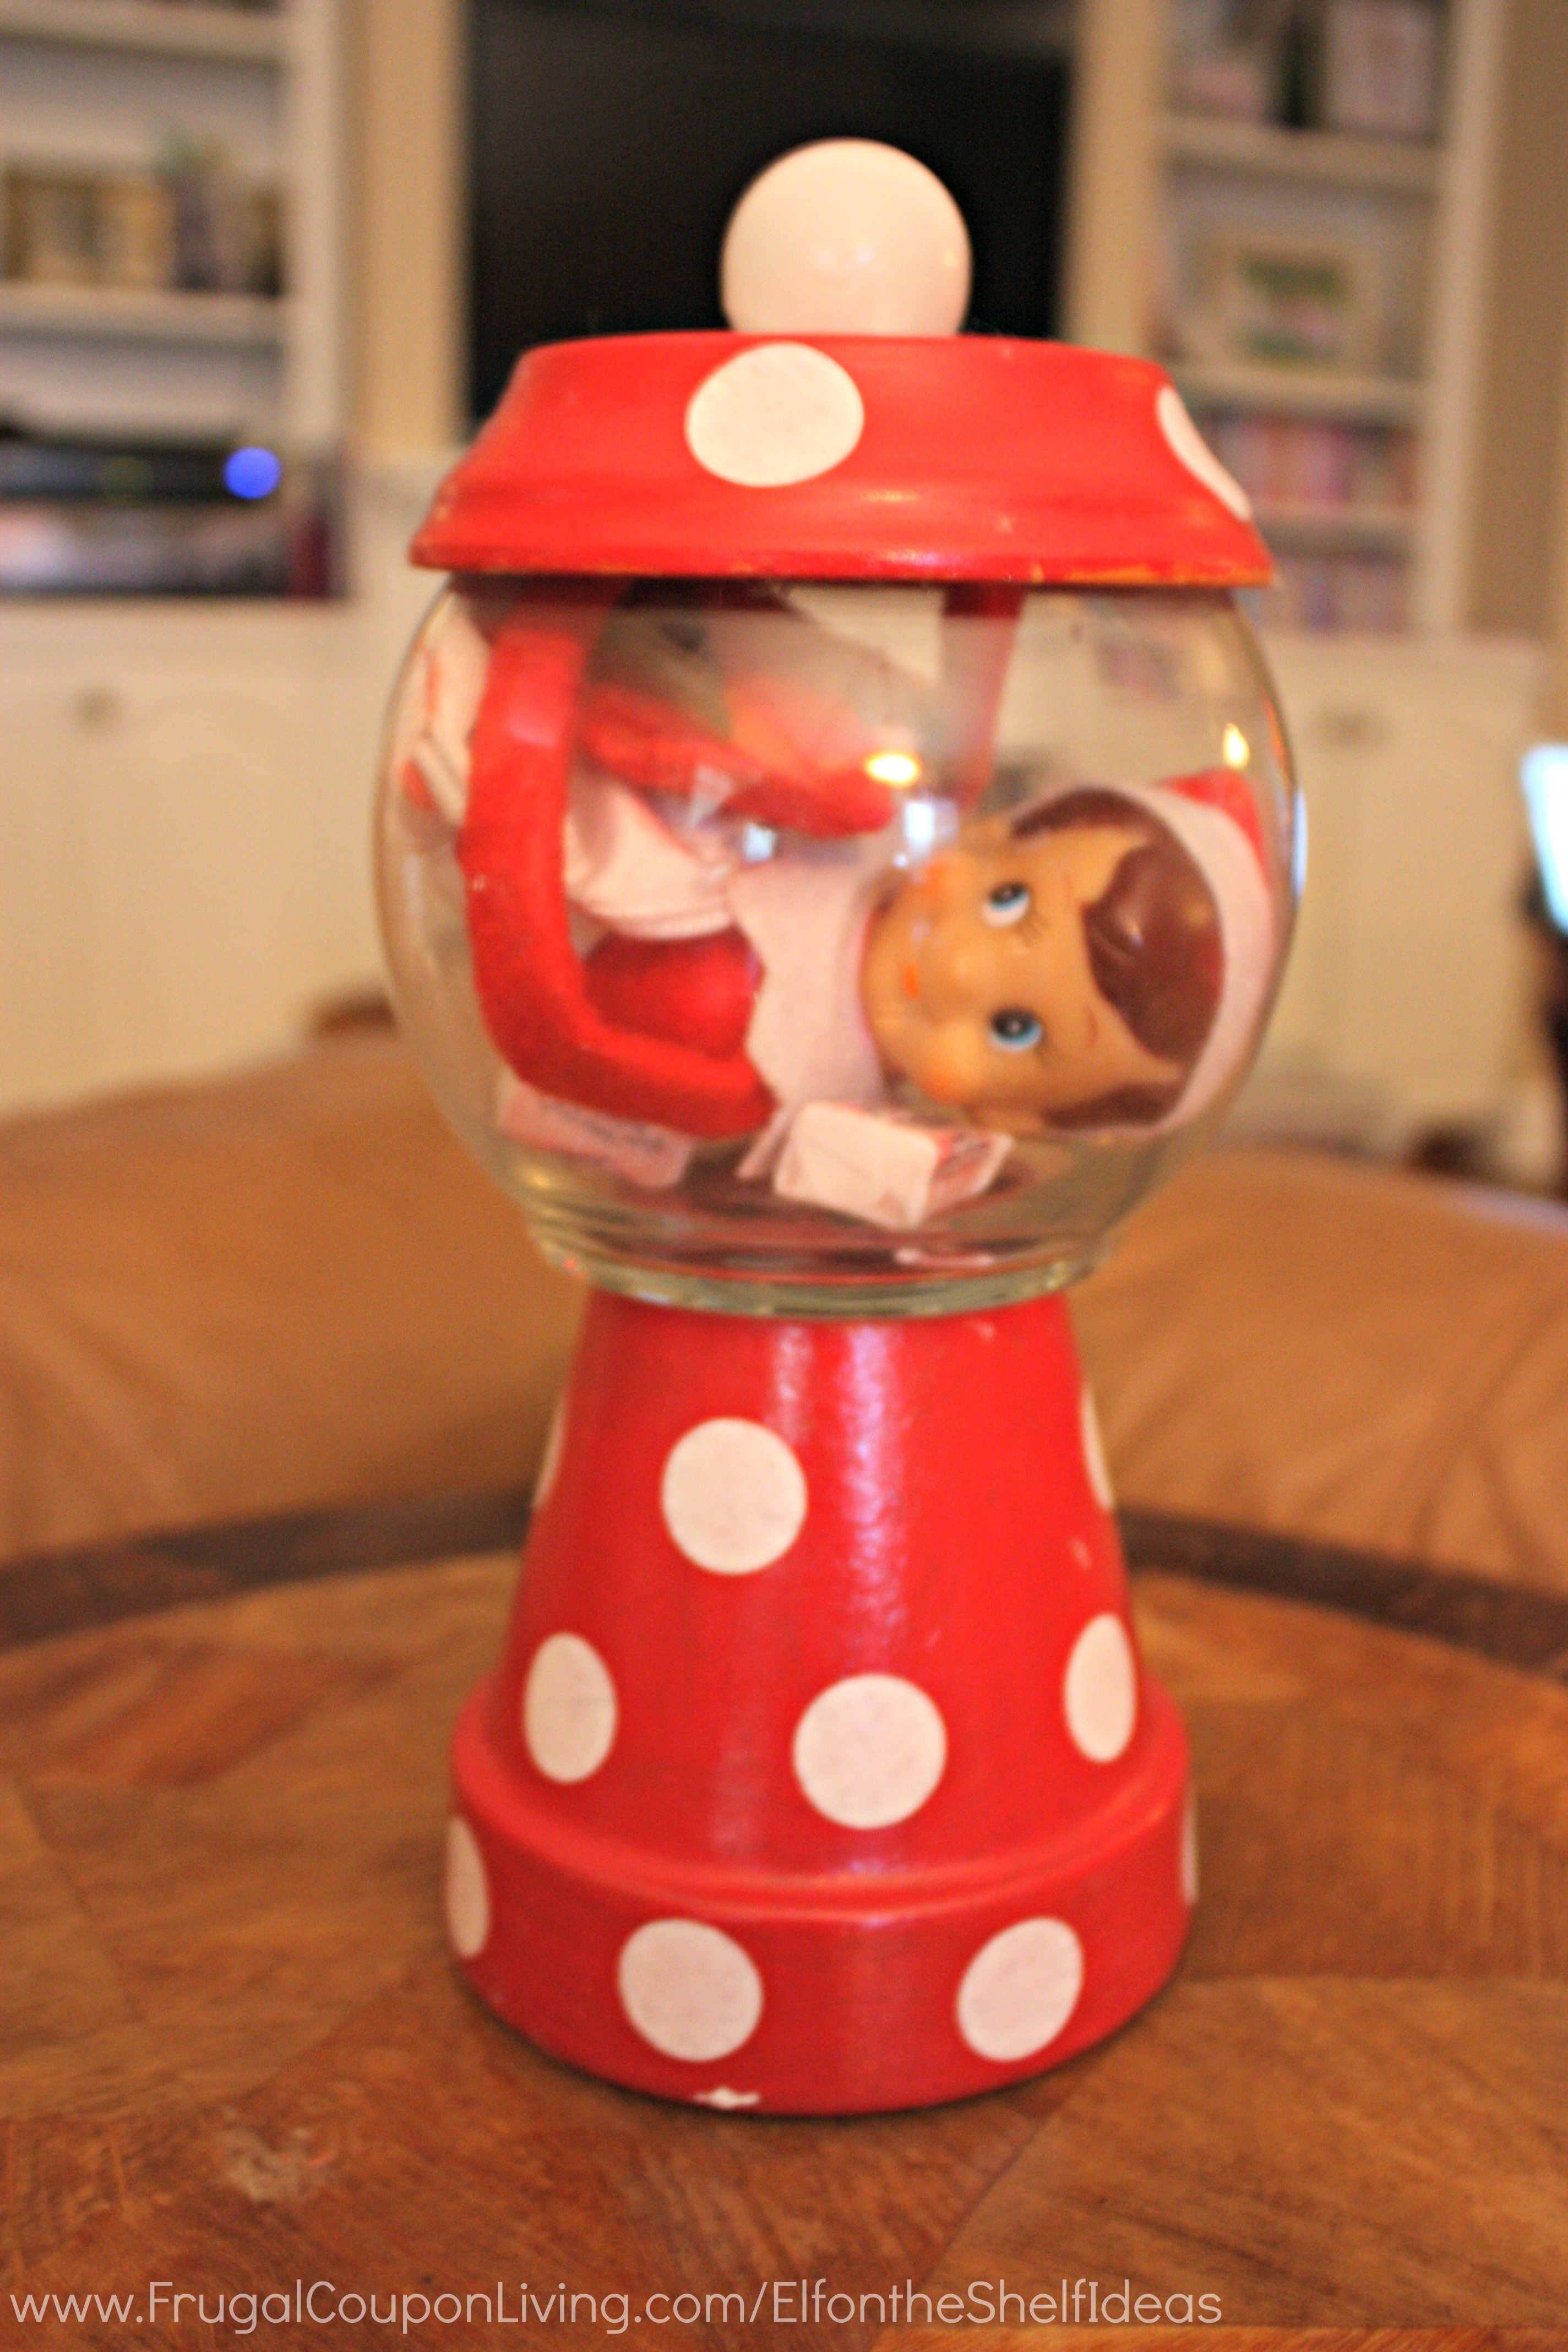 elf-in-the-jar-elf-on-the-shelf-ideas-frugal-coupon-living